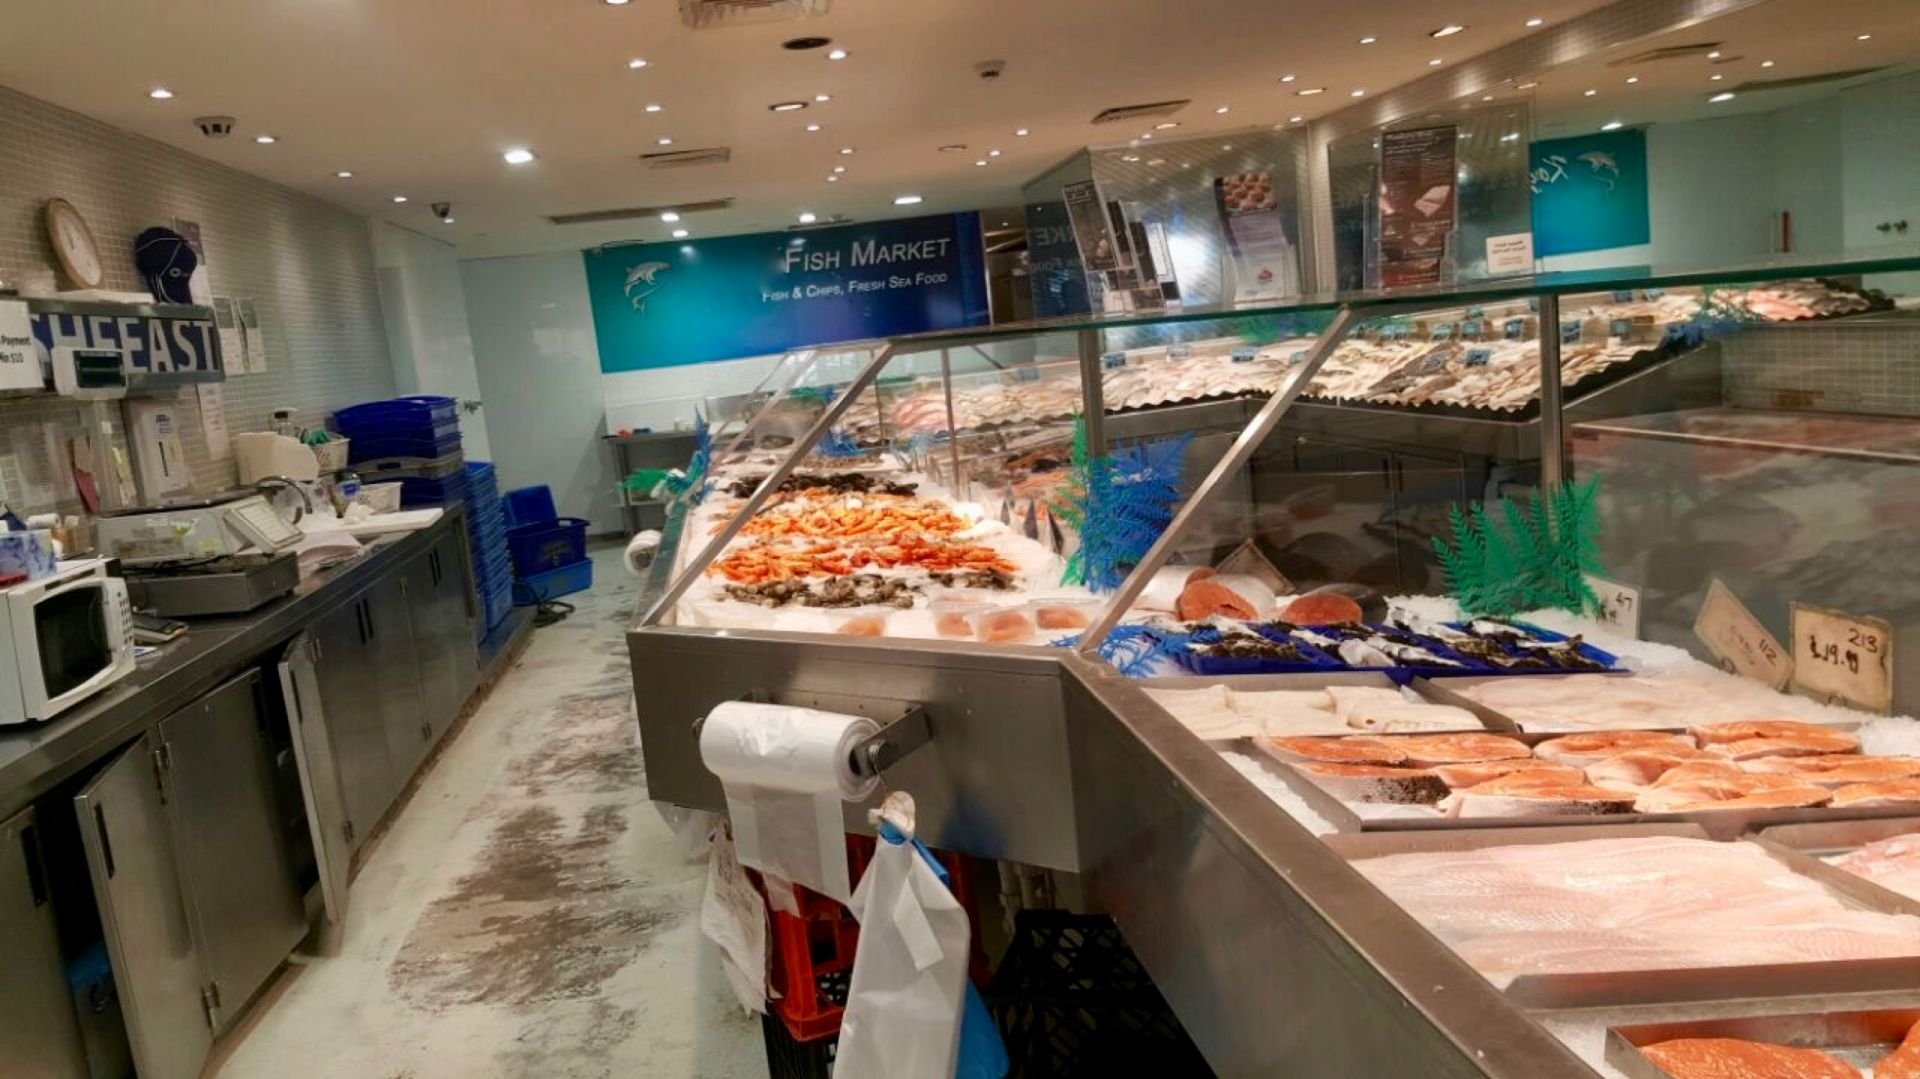 Busy Fish and Chips shop in Kogarah, Sydney. Low rent. Serving quality range of fresh and cooked Seafood, delicious grilled fish, burgers and salads. Busy shop situated south of Sydney.